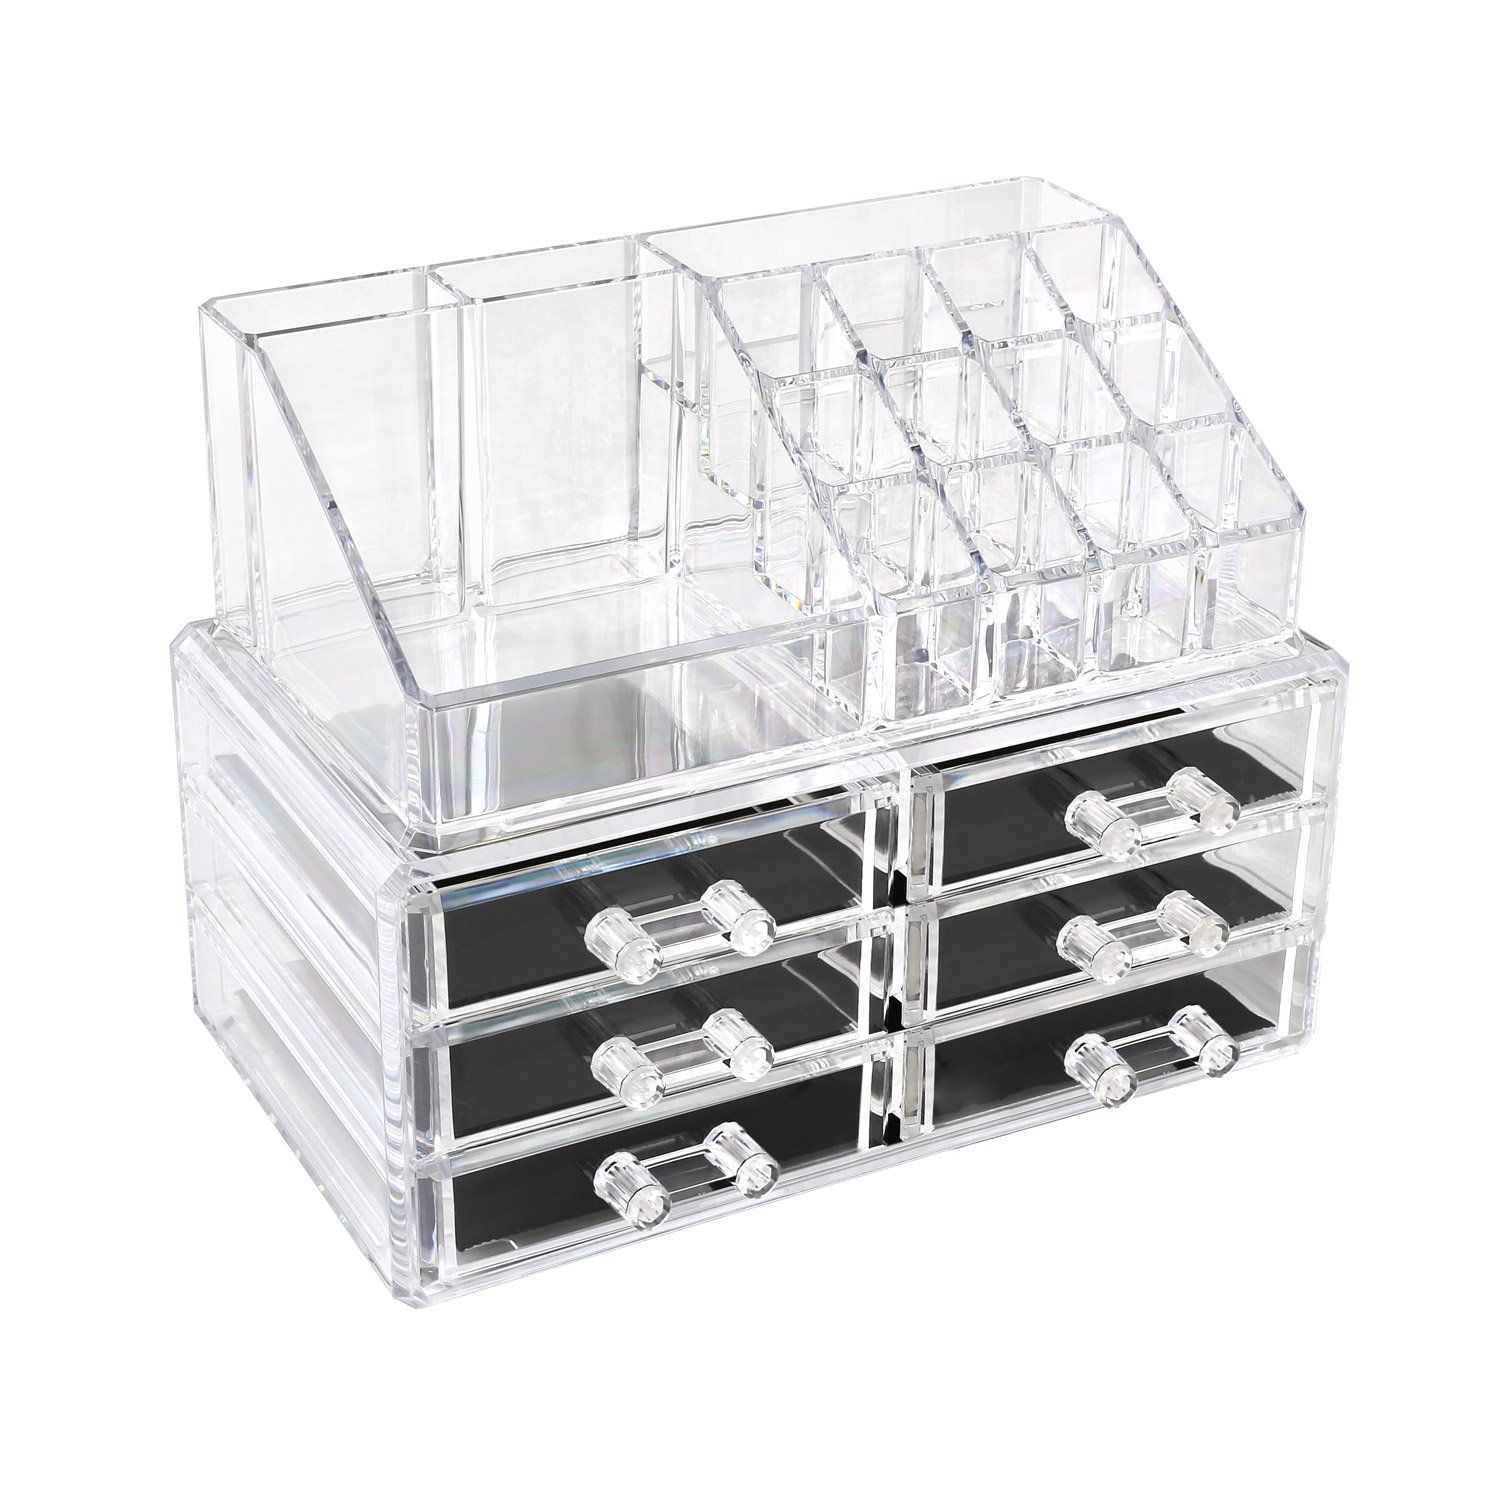 MVPOWER Clear Acrylic Cosmetic Organizer Display Stand Makeup ...